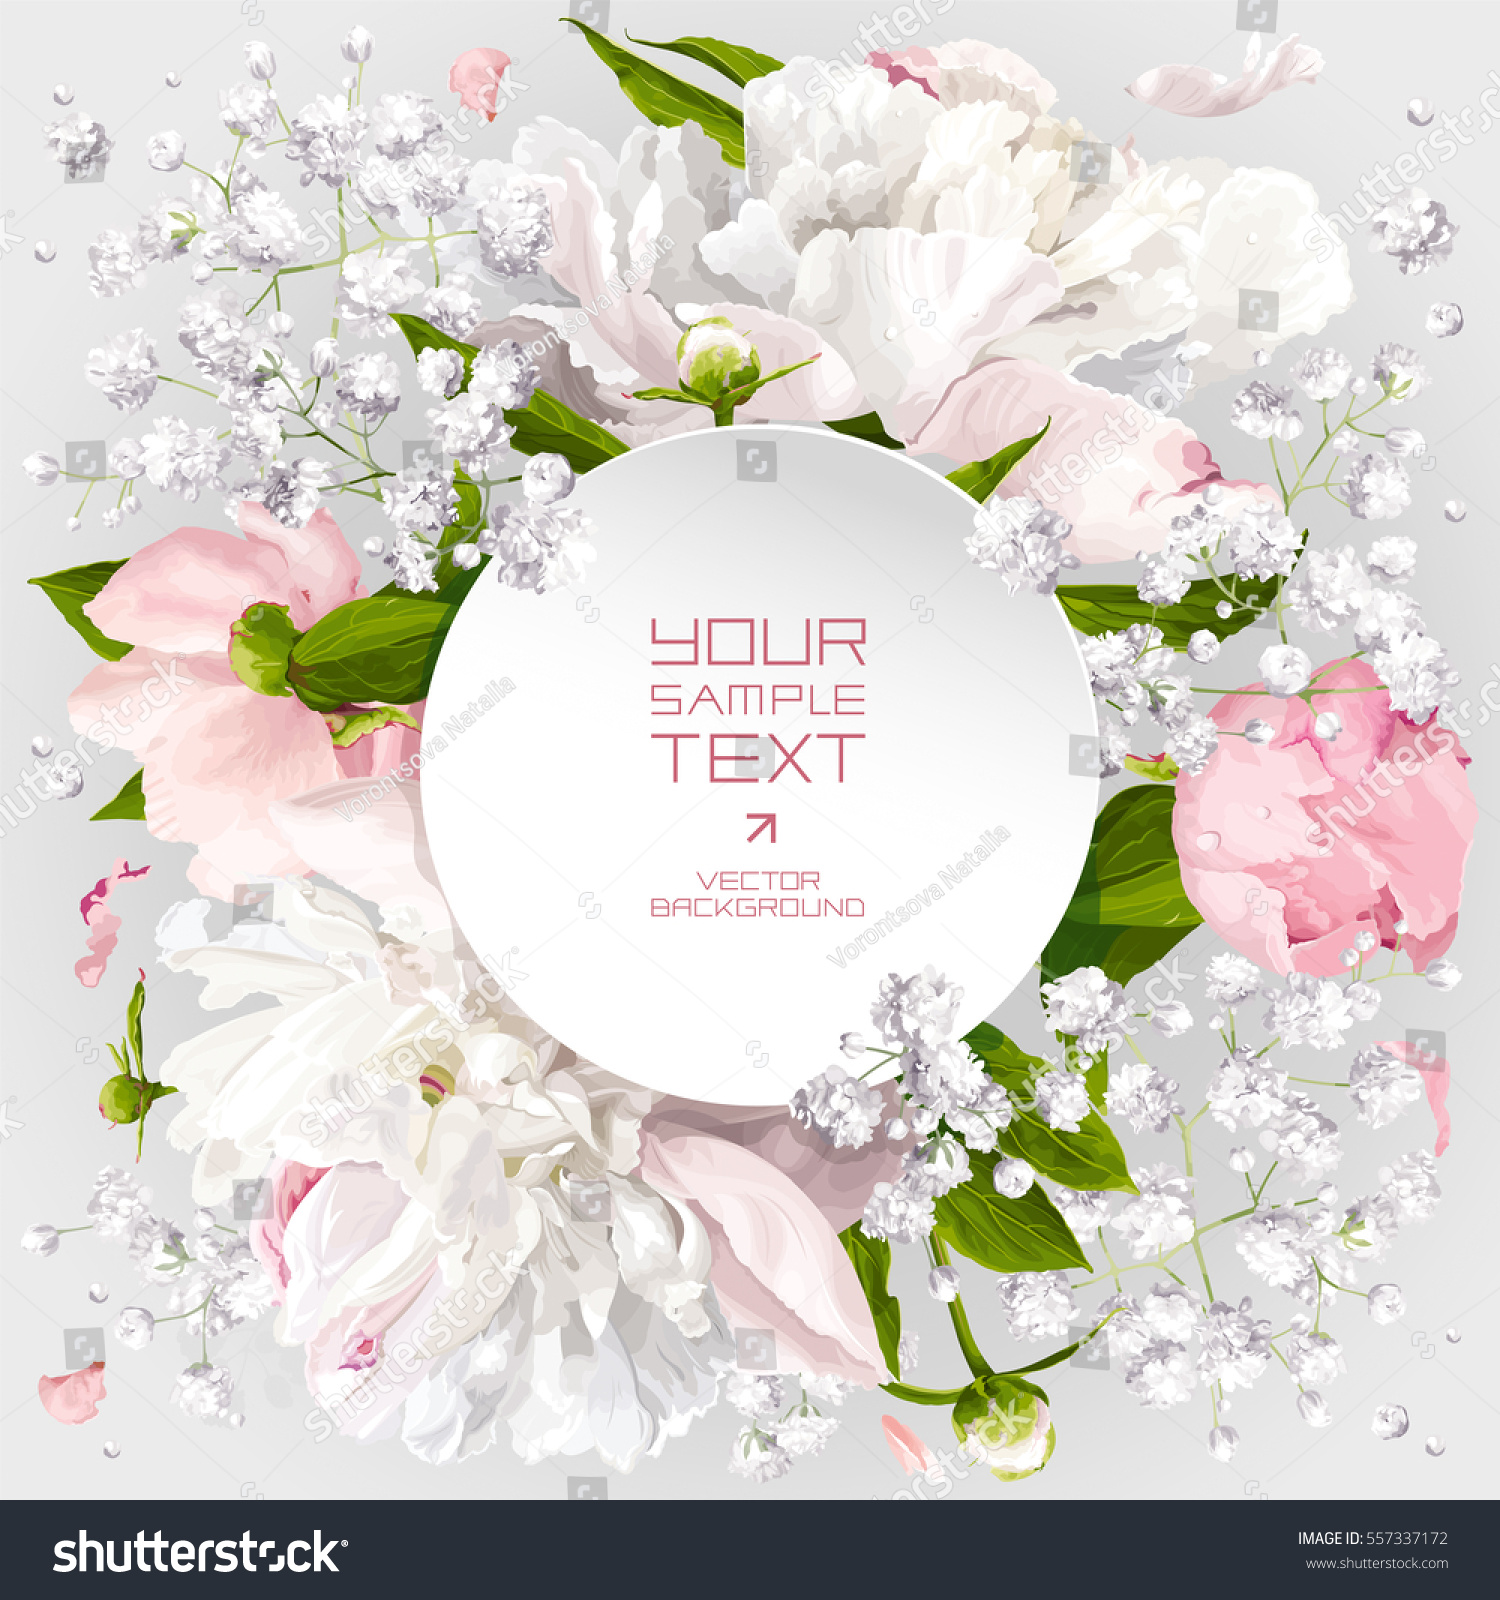 Romantic flower invitation greeting card wedding stock vector romantic flower invitation or greeting card for wedding decoration valentines day sales and other kristyandbryce Images